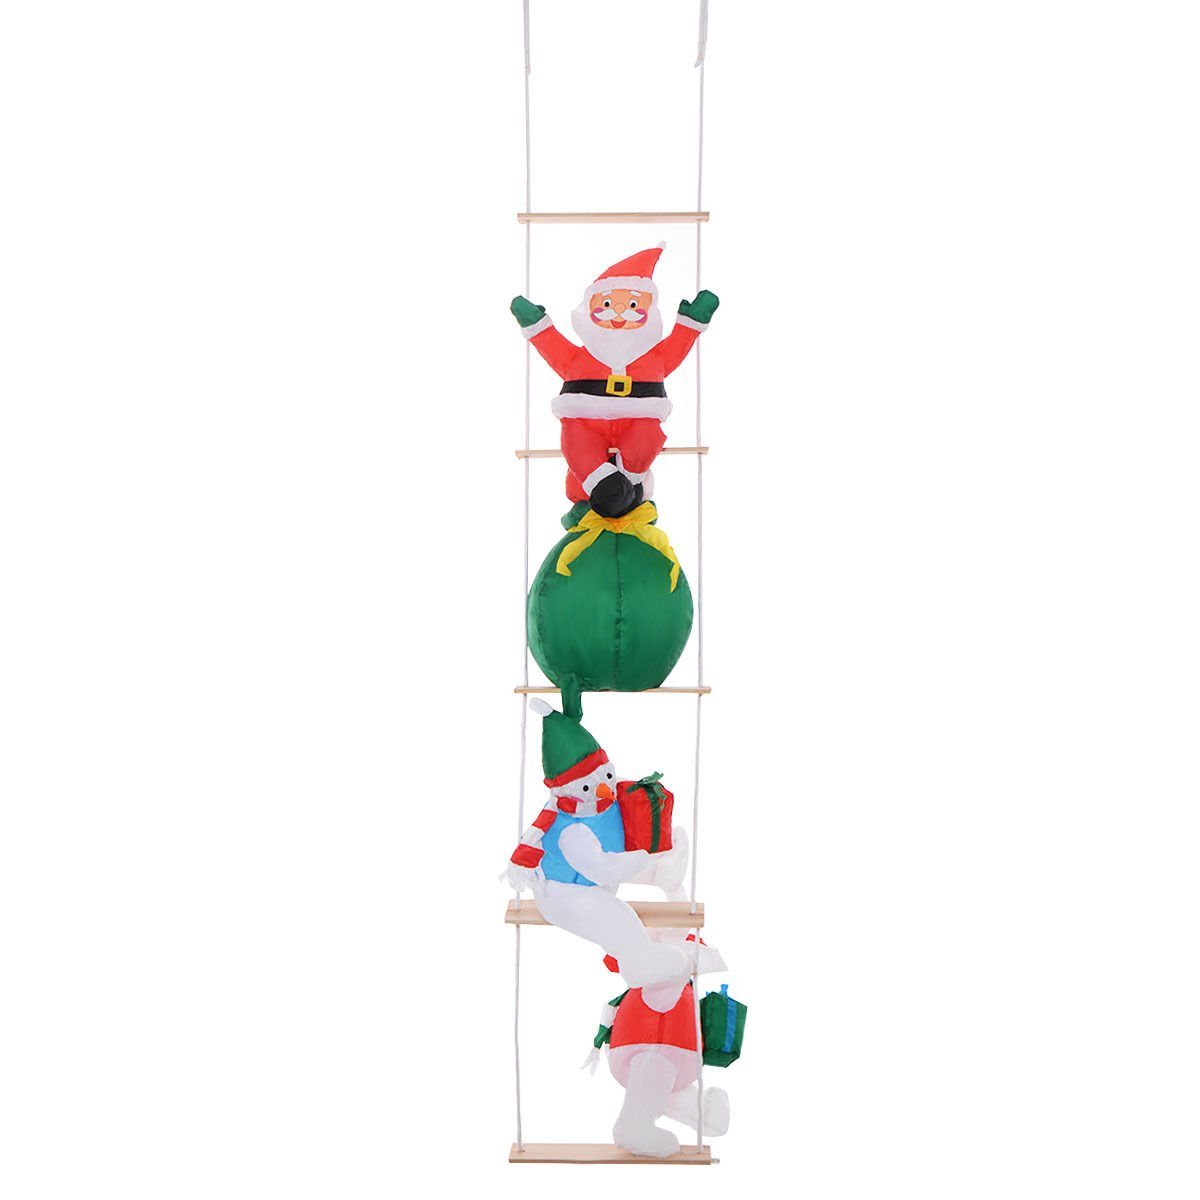 8 Ft Airblown Inflatable Christmas Xmas Santa Ladder Decor Lighted Lawn Present Xmas Decoration